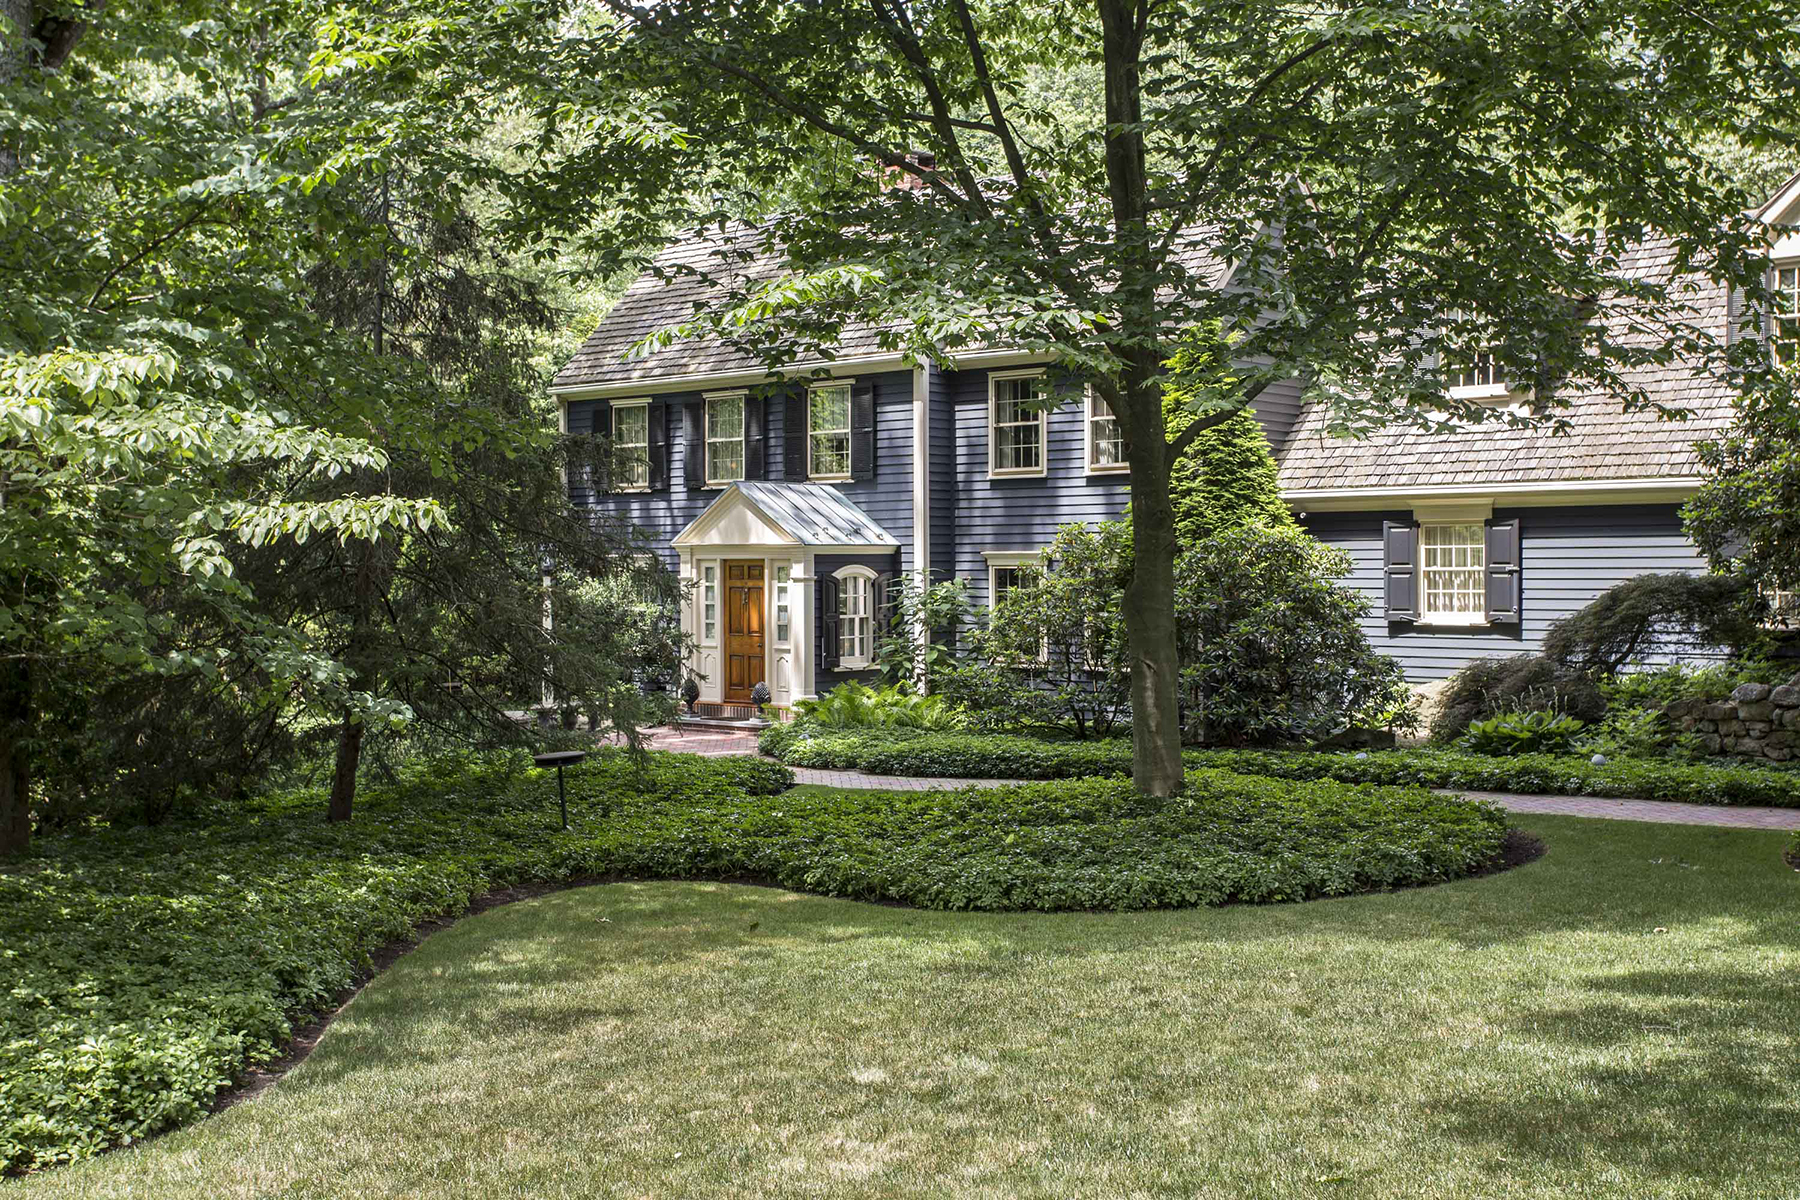 Single Family Home for Sale at Solebury 2951 Comfort Road Solebury, Pennsylvania, 18938 United States